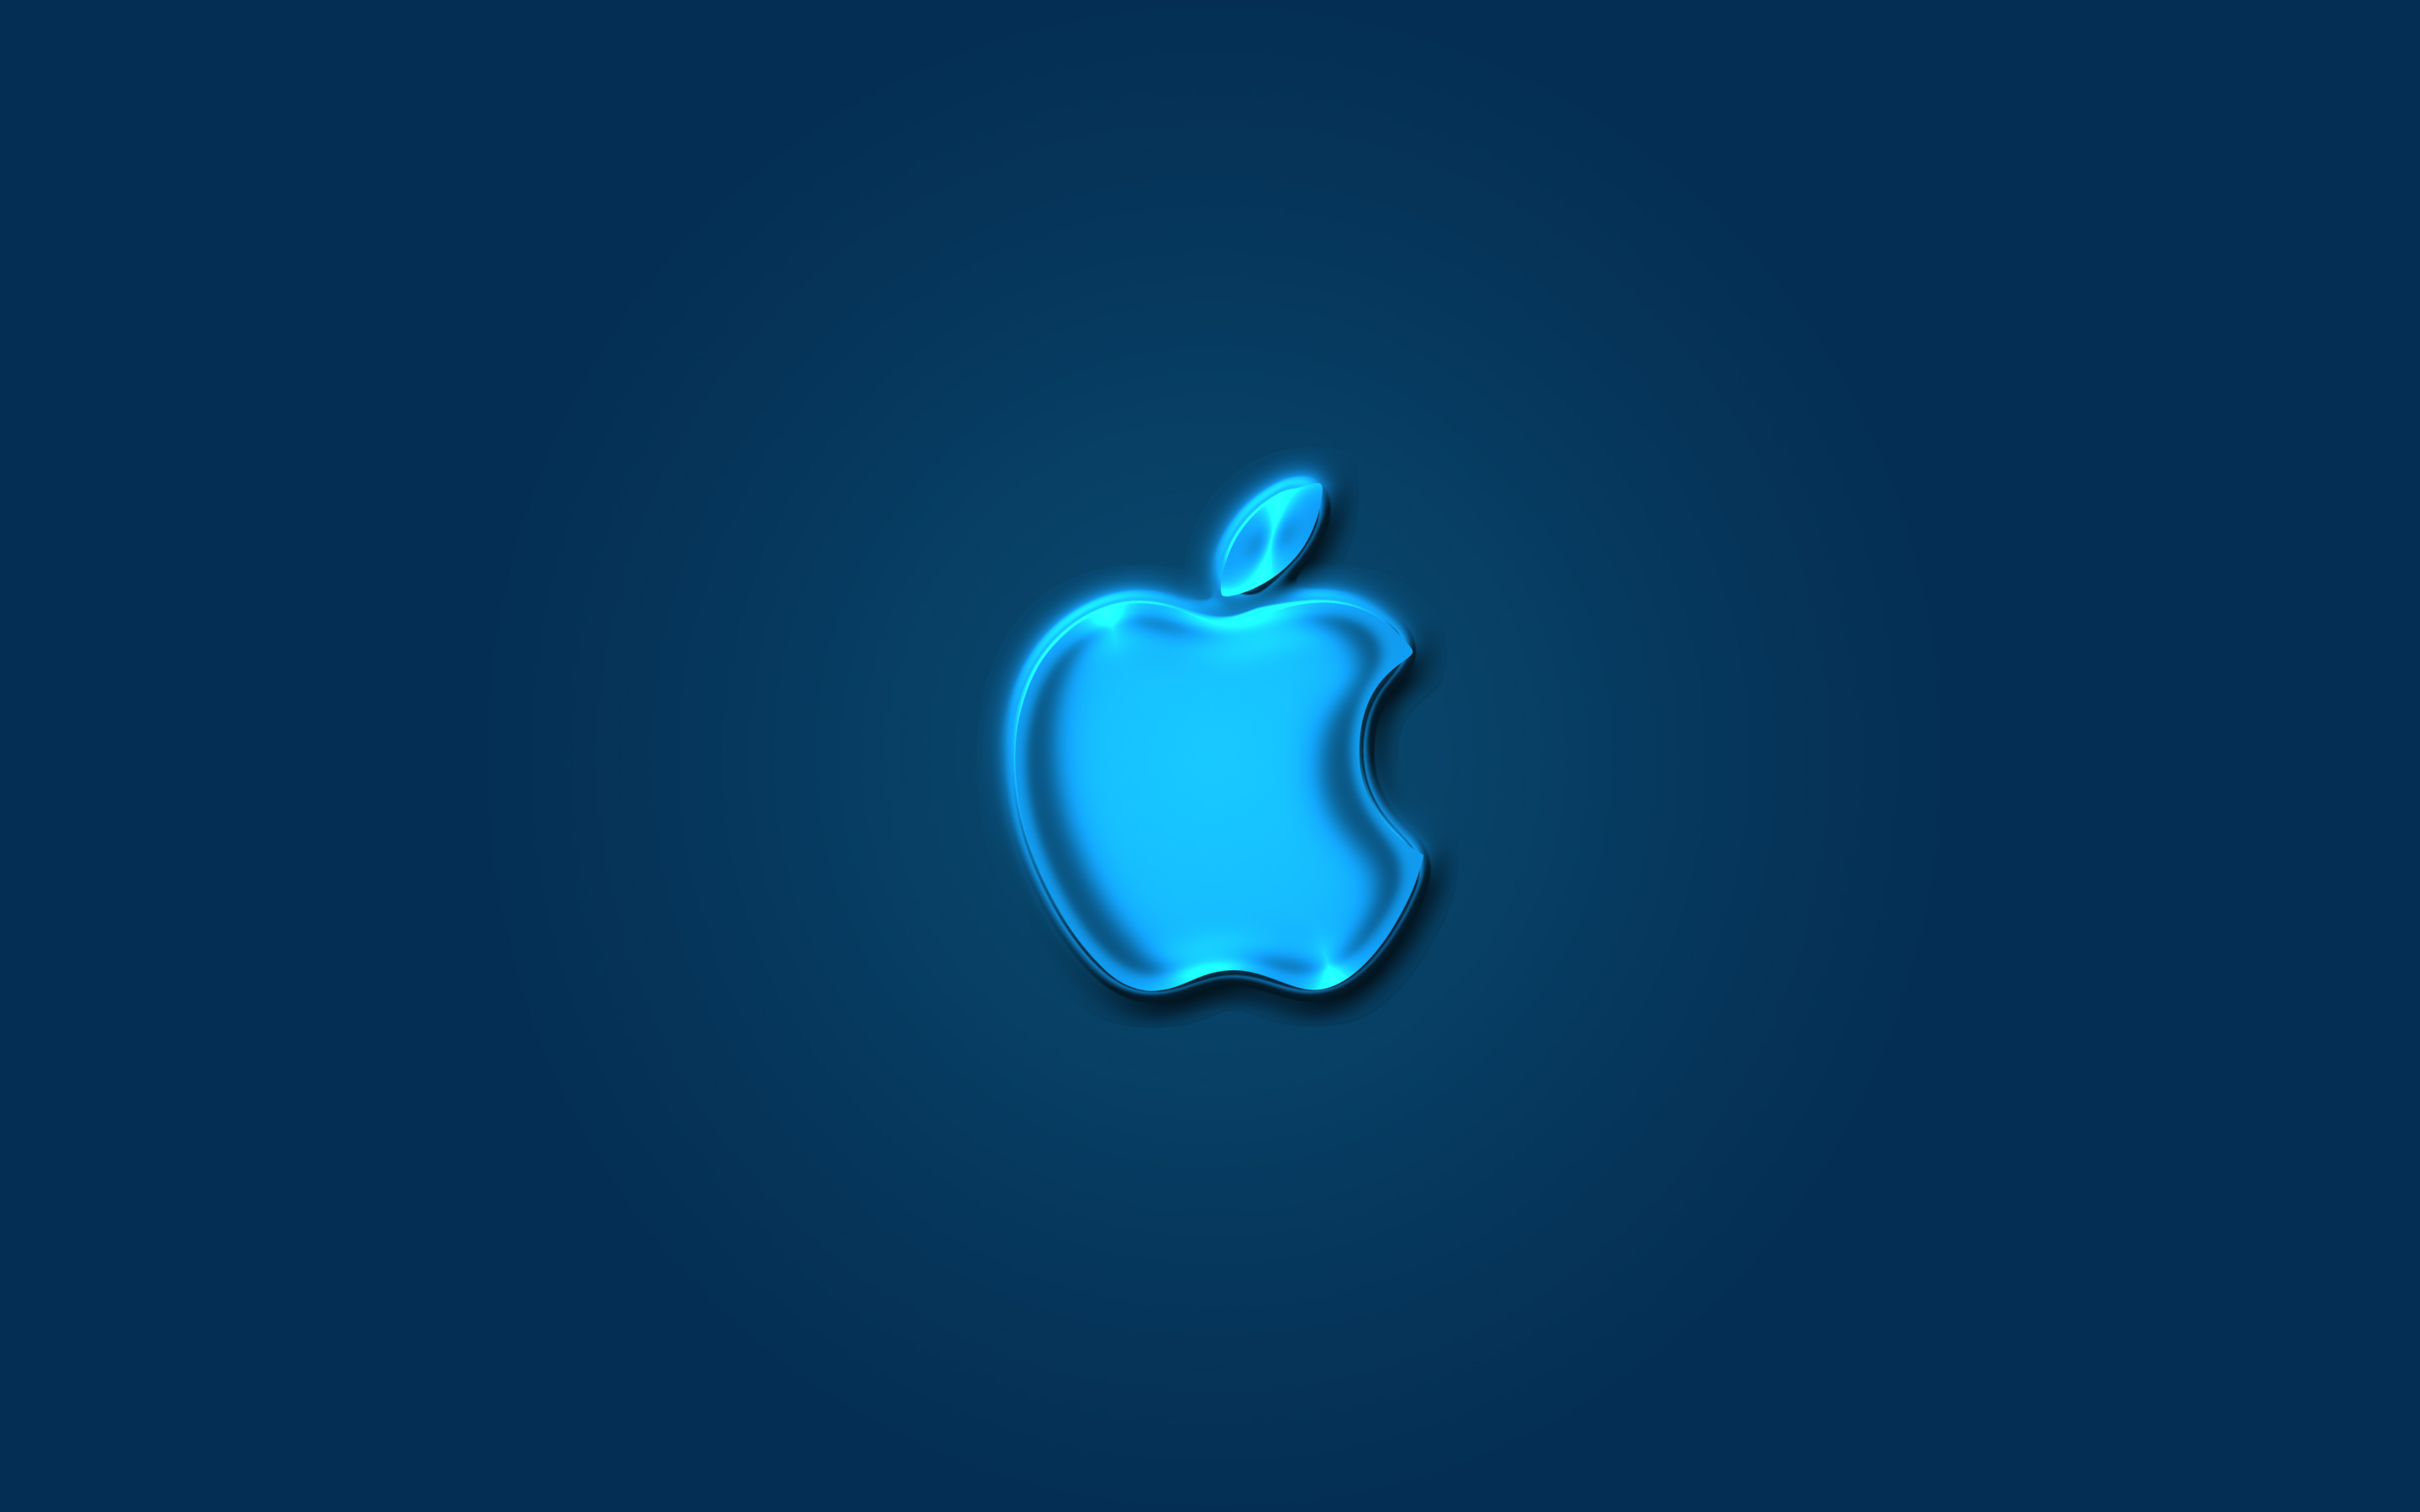 iPhone iPad MacBook Air MacBook Pro iMac Apple Logo Wallpaper 壁紙 Glow Blue (青色)